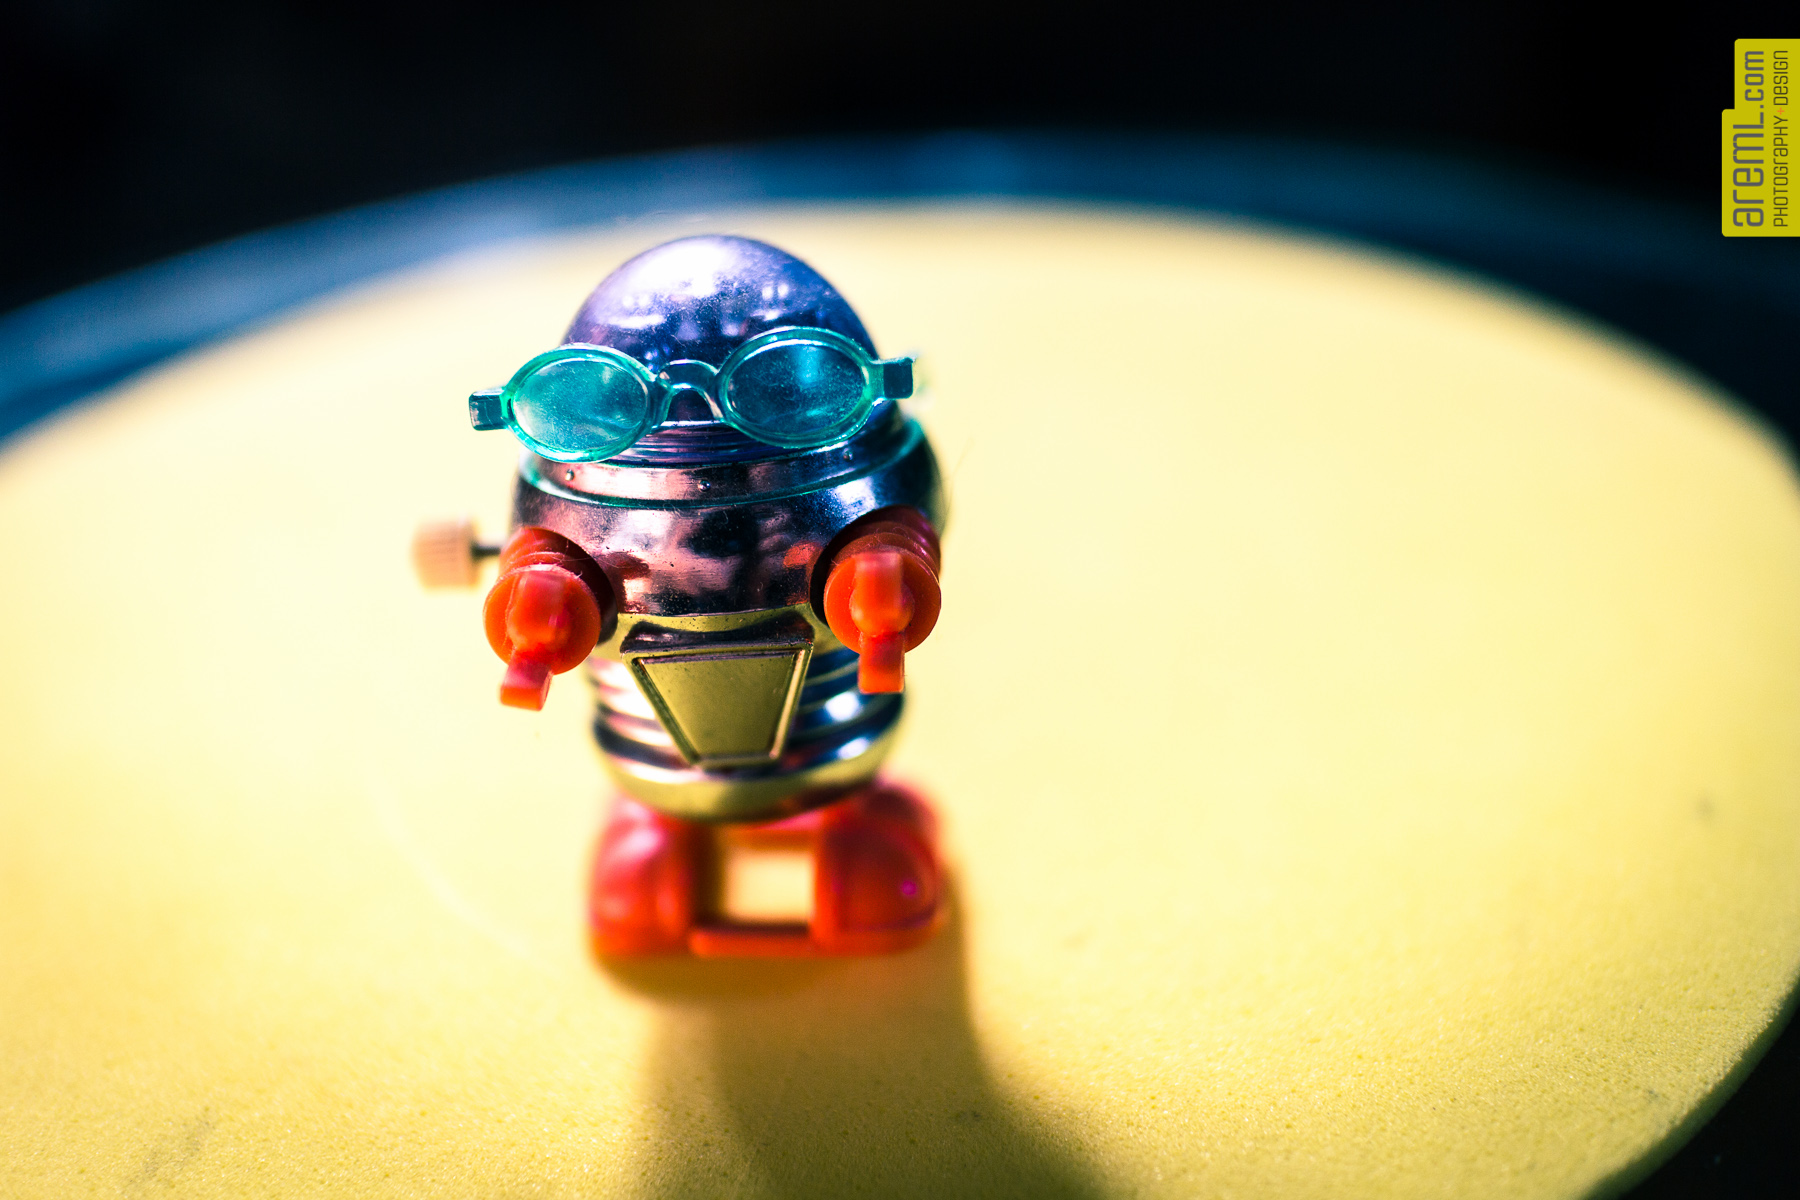 This is the tiniest robot in my collection. About 1.5 inches high. Had this thing forever. Since I was maybe 8?